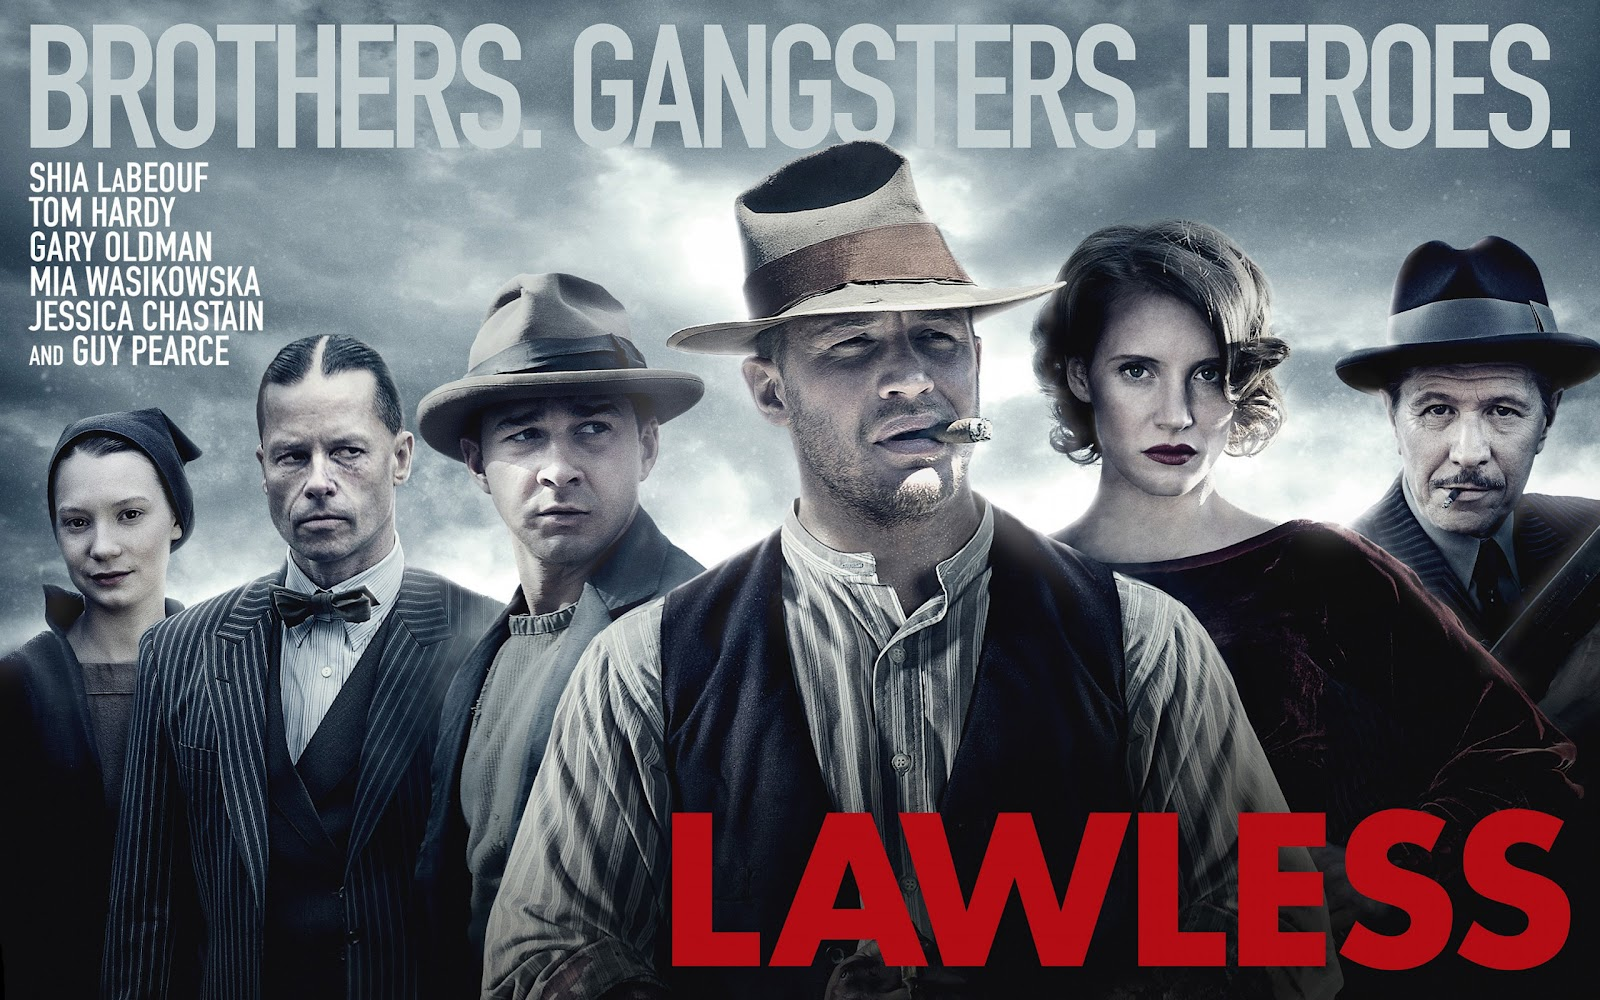 http://4.bp.blogspot.com/-mWISI33F3q0/UED0lVzWkNI/AAAAAAAAEKc/9r7xF5L1Y88/s1600/Lawless_Movie_2012_HD_Wallpaper-HidefWall.Blogspot.Com.jpg